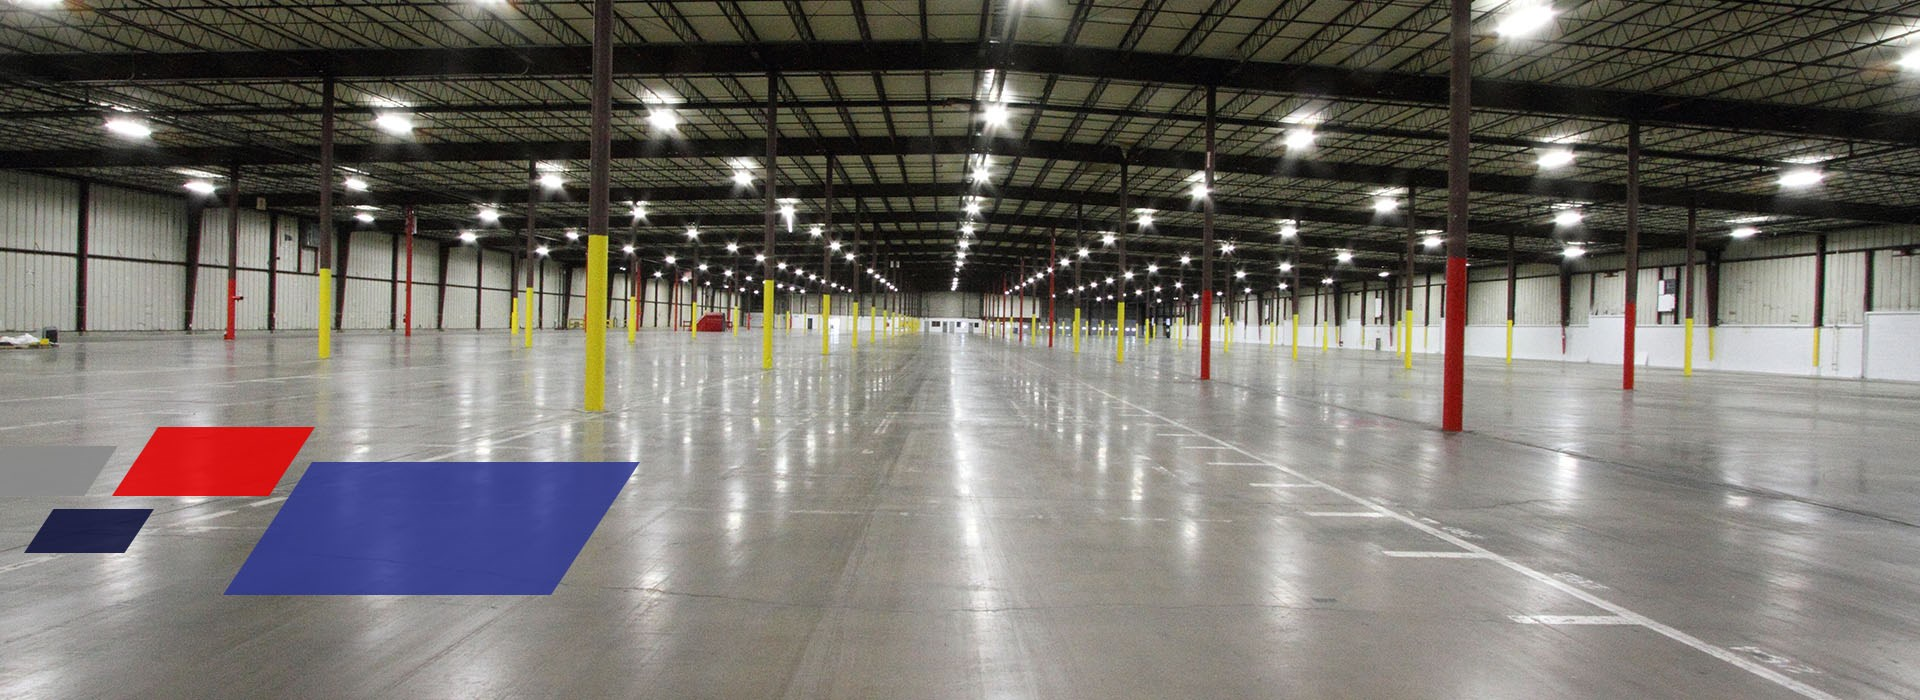 Warehousing in Mechanicsburg